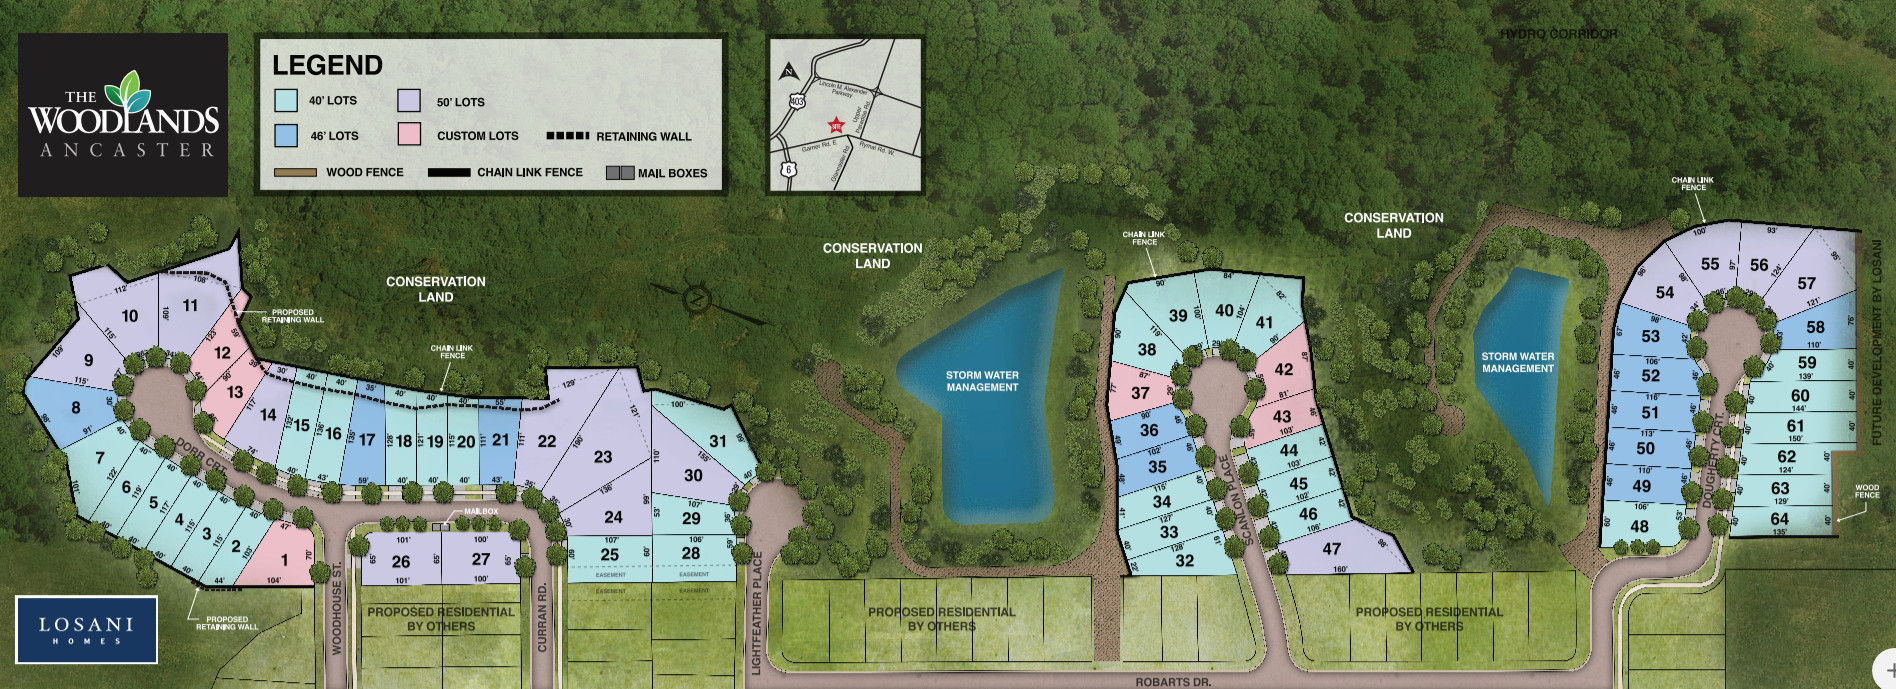 Site plan for The Woodlands in Ancaster, Ontario